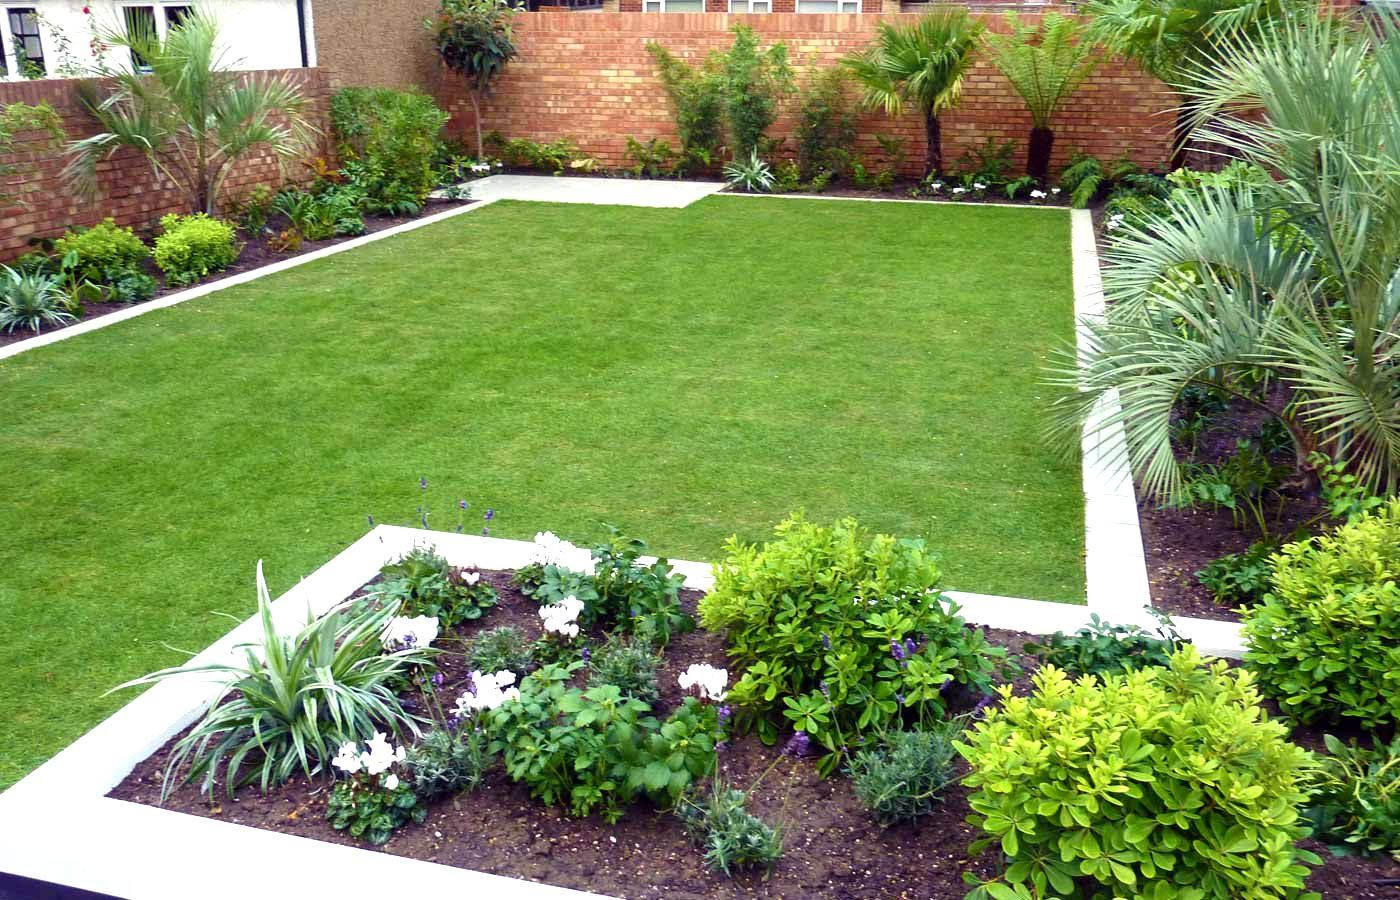 simple garden designs no fret small garden design ForSimple Garden Designs For Small Gardens